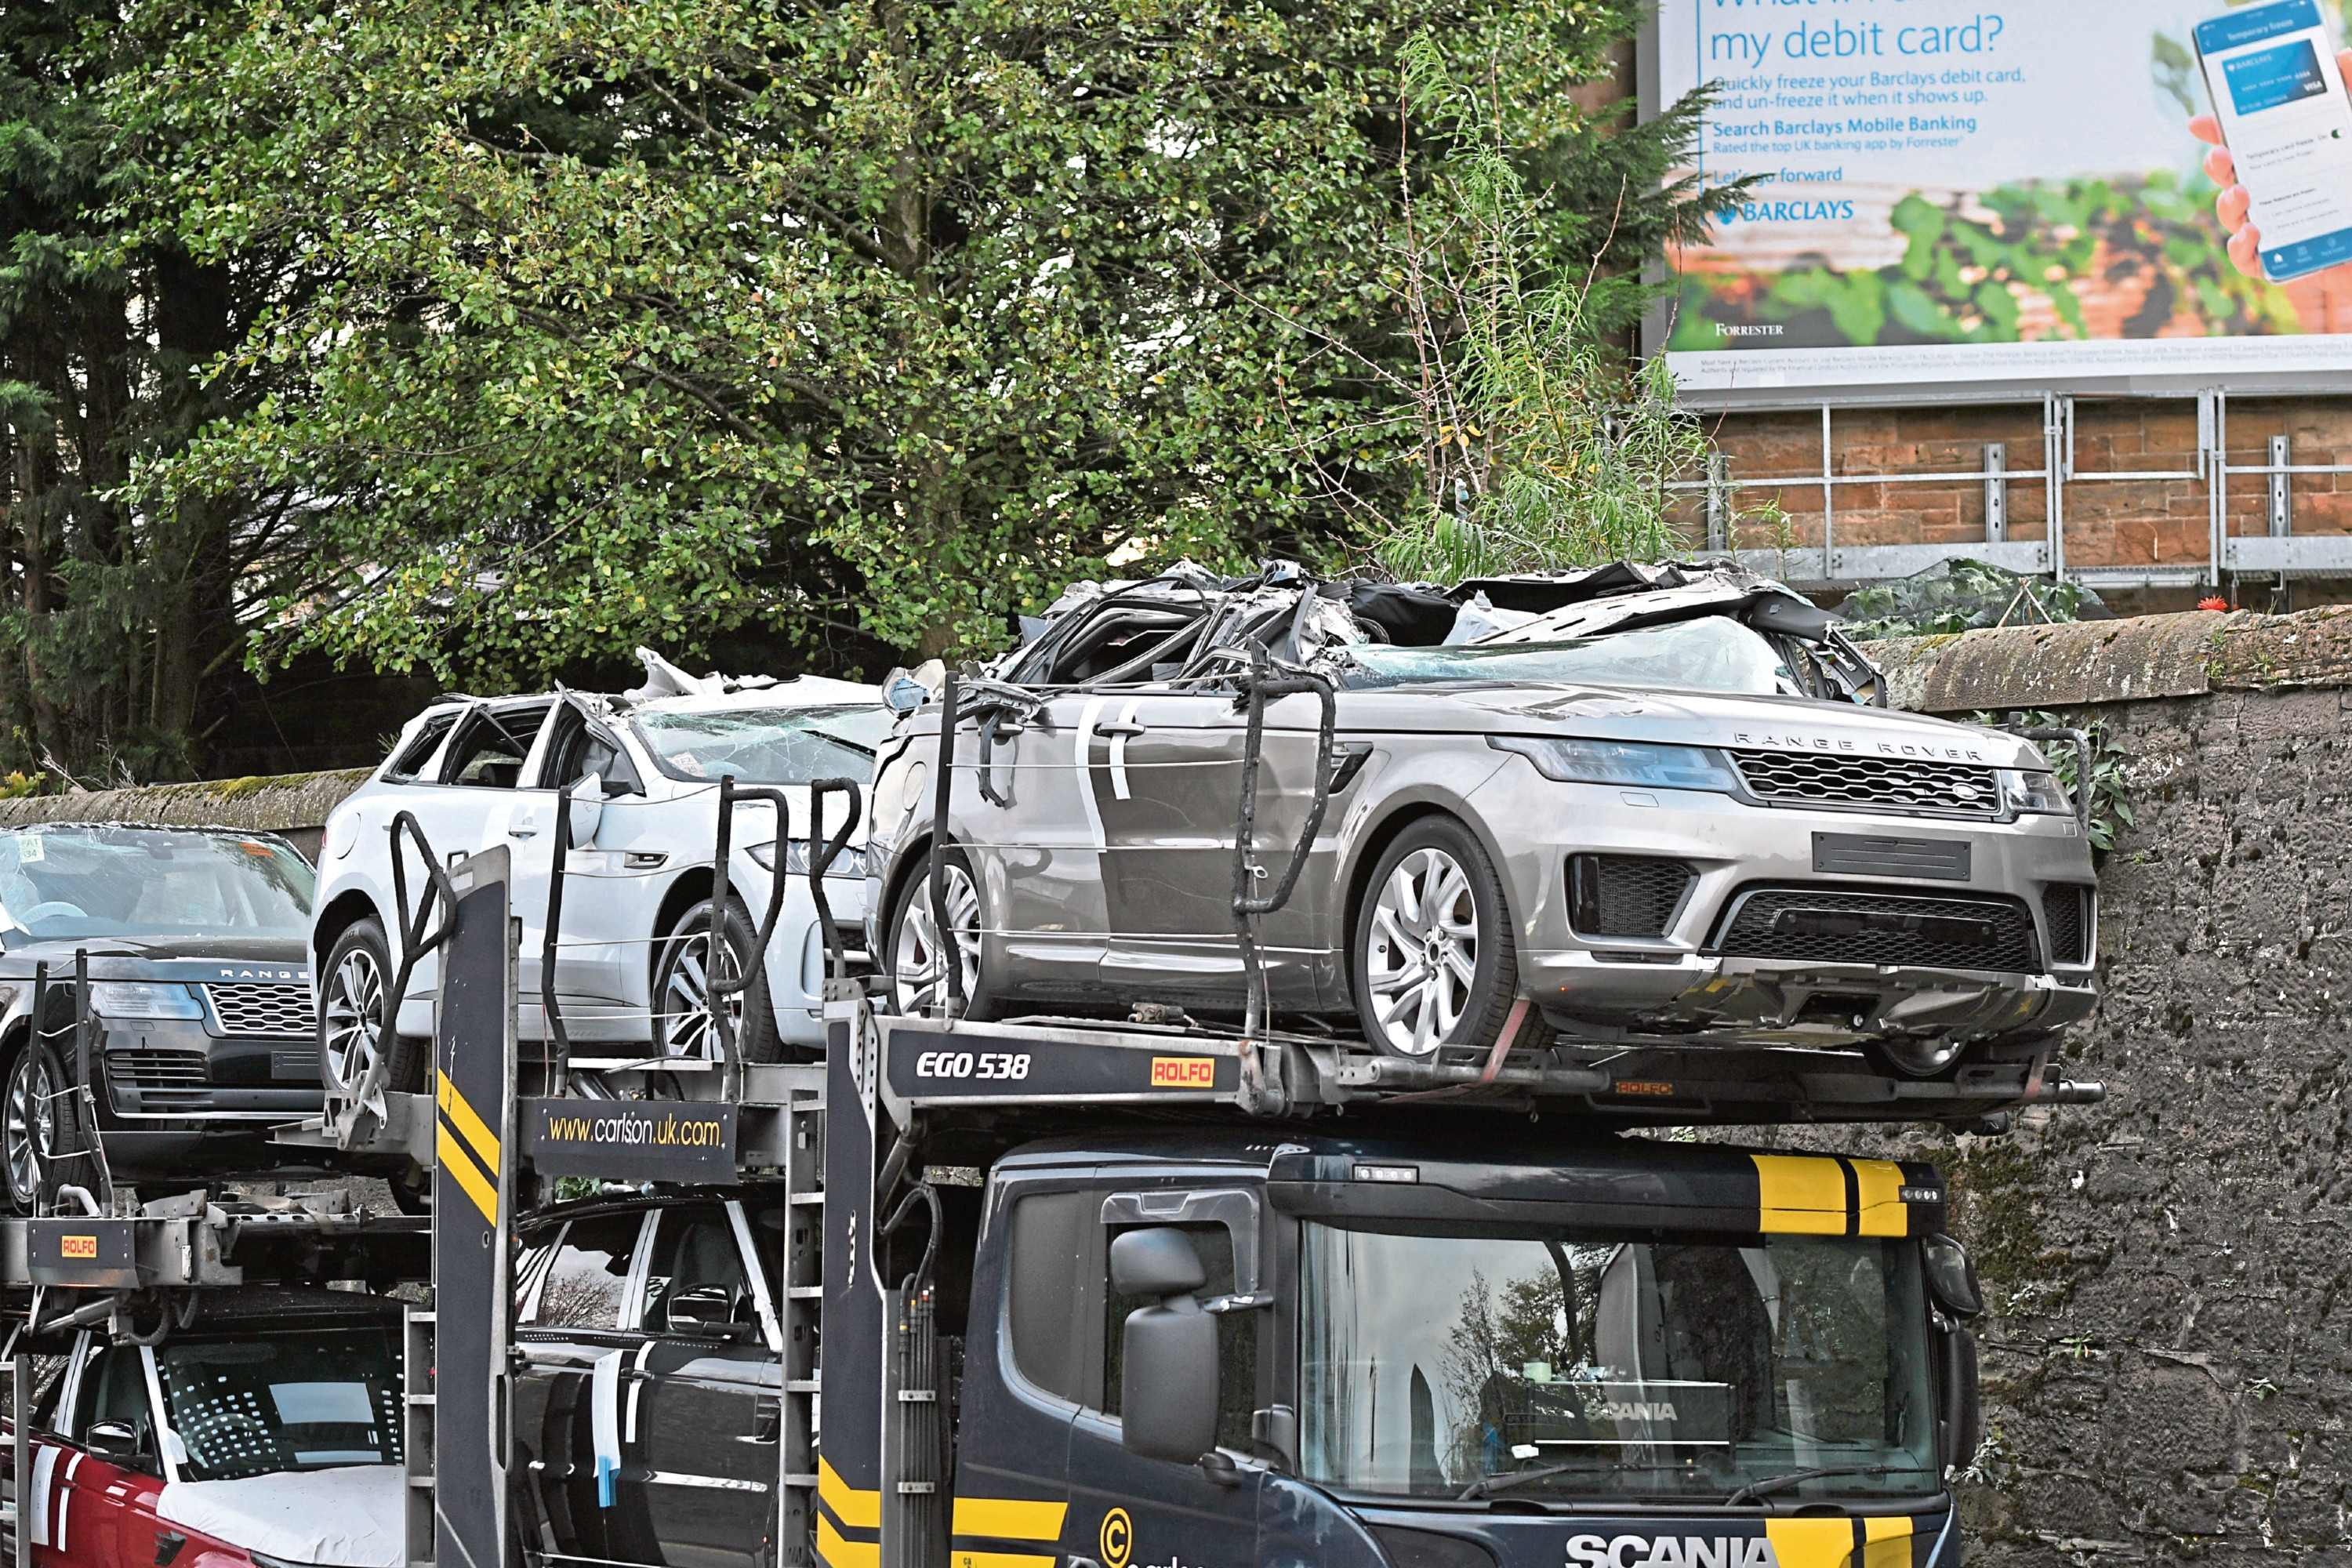 One of the damaged cars on the transporter.